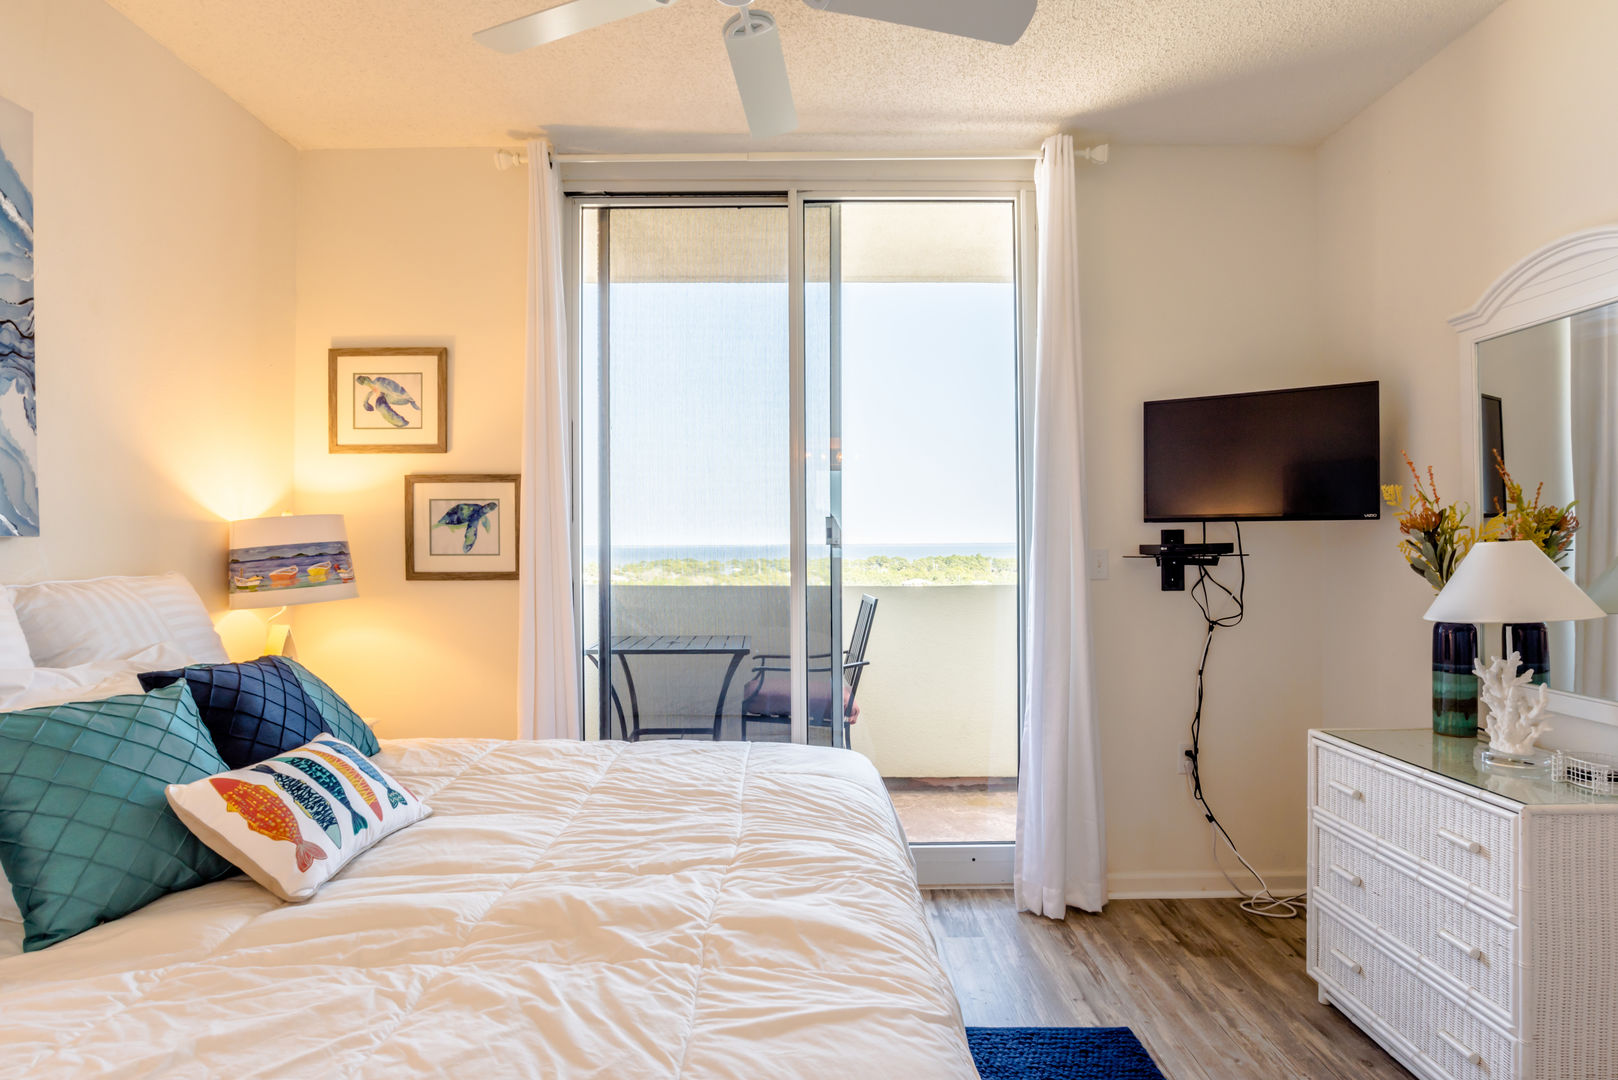 Guest Bedroom Has A Private Balcony Overlooking The Beautifully Landscaped Property And Bay View.